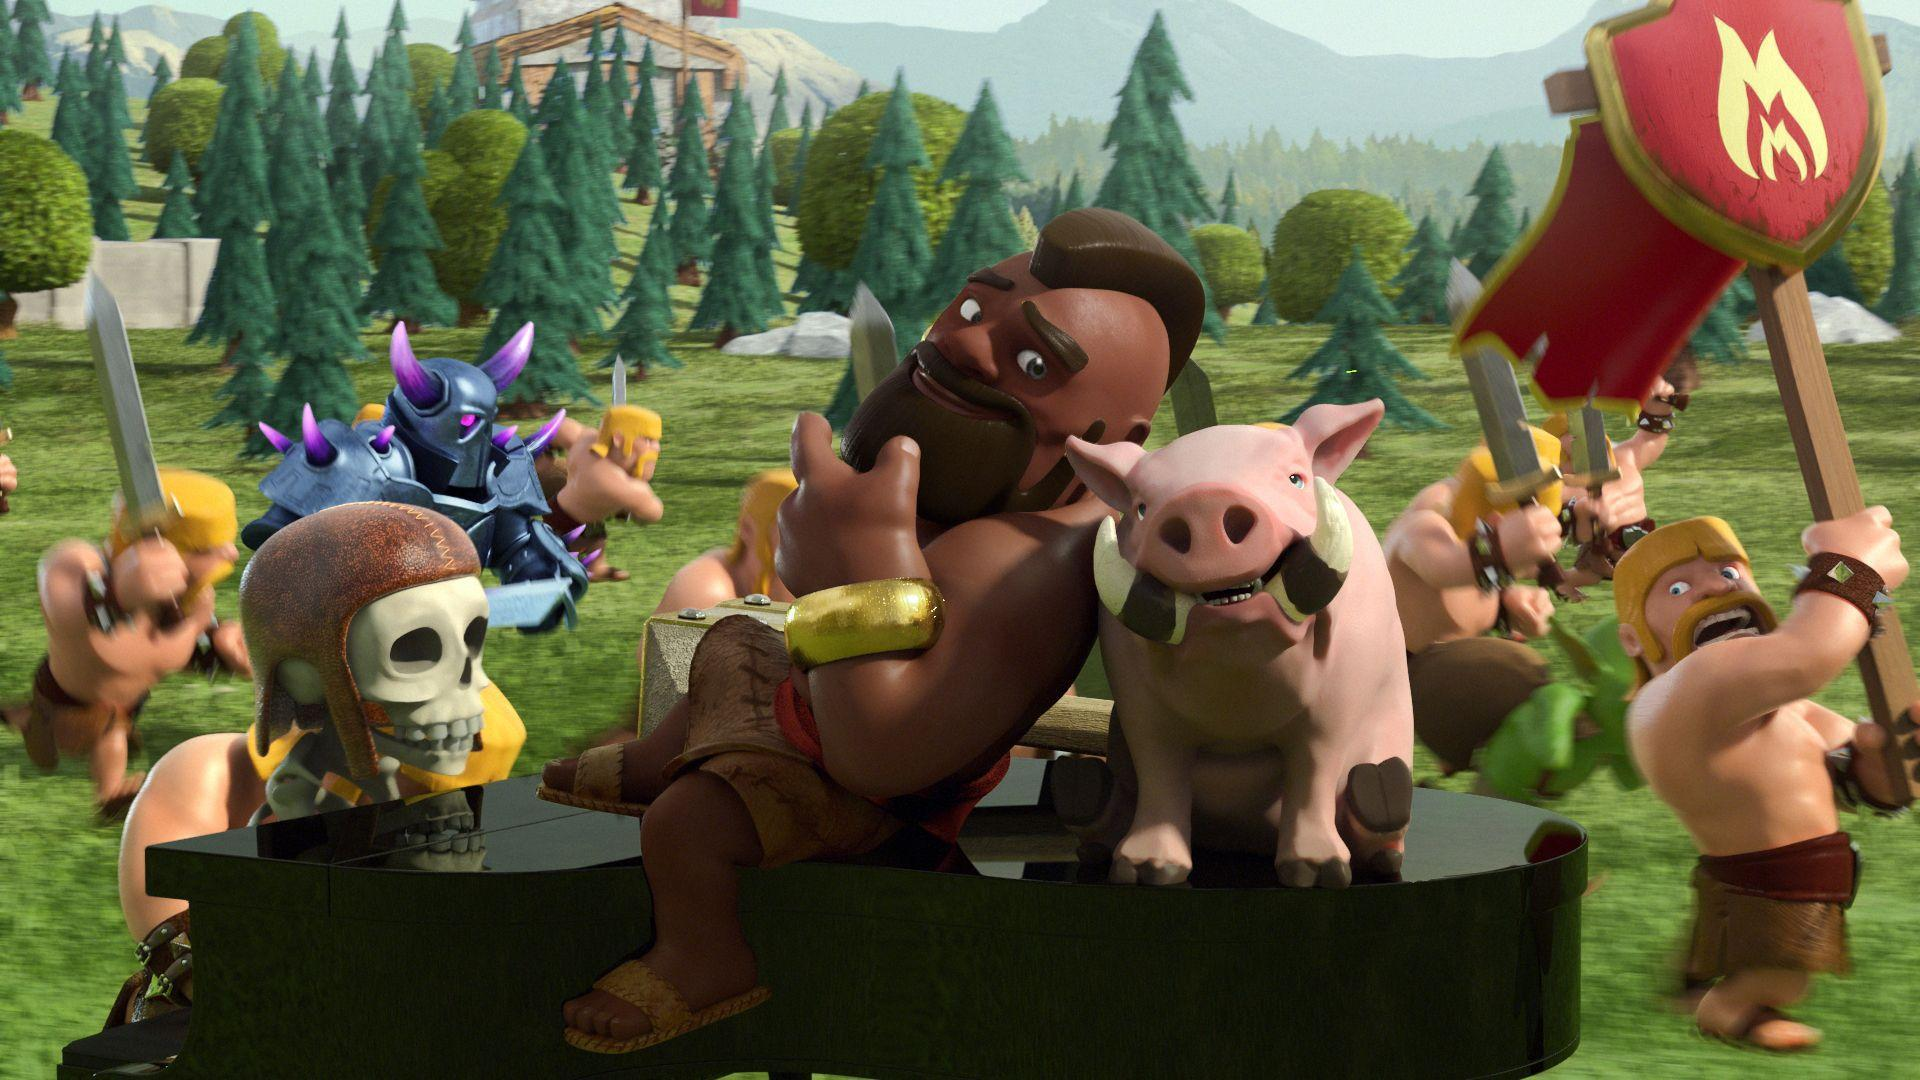 Funny Clash of Clans Wallpaper | Full HD Pictures